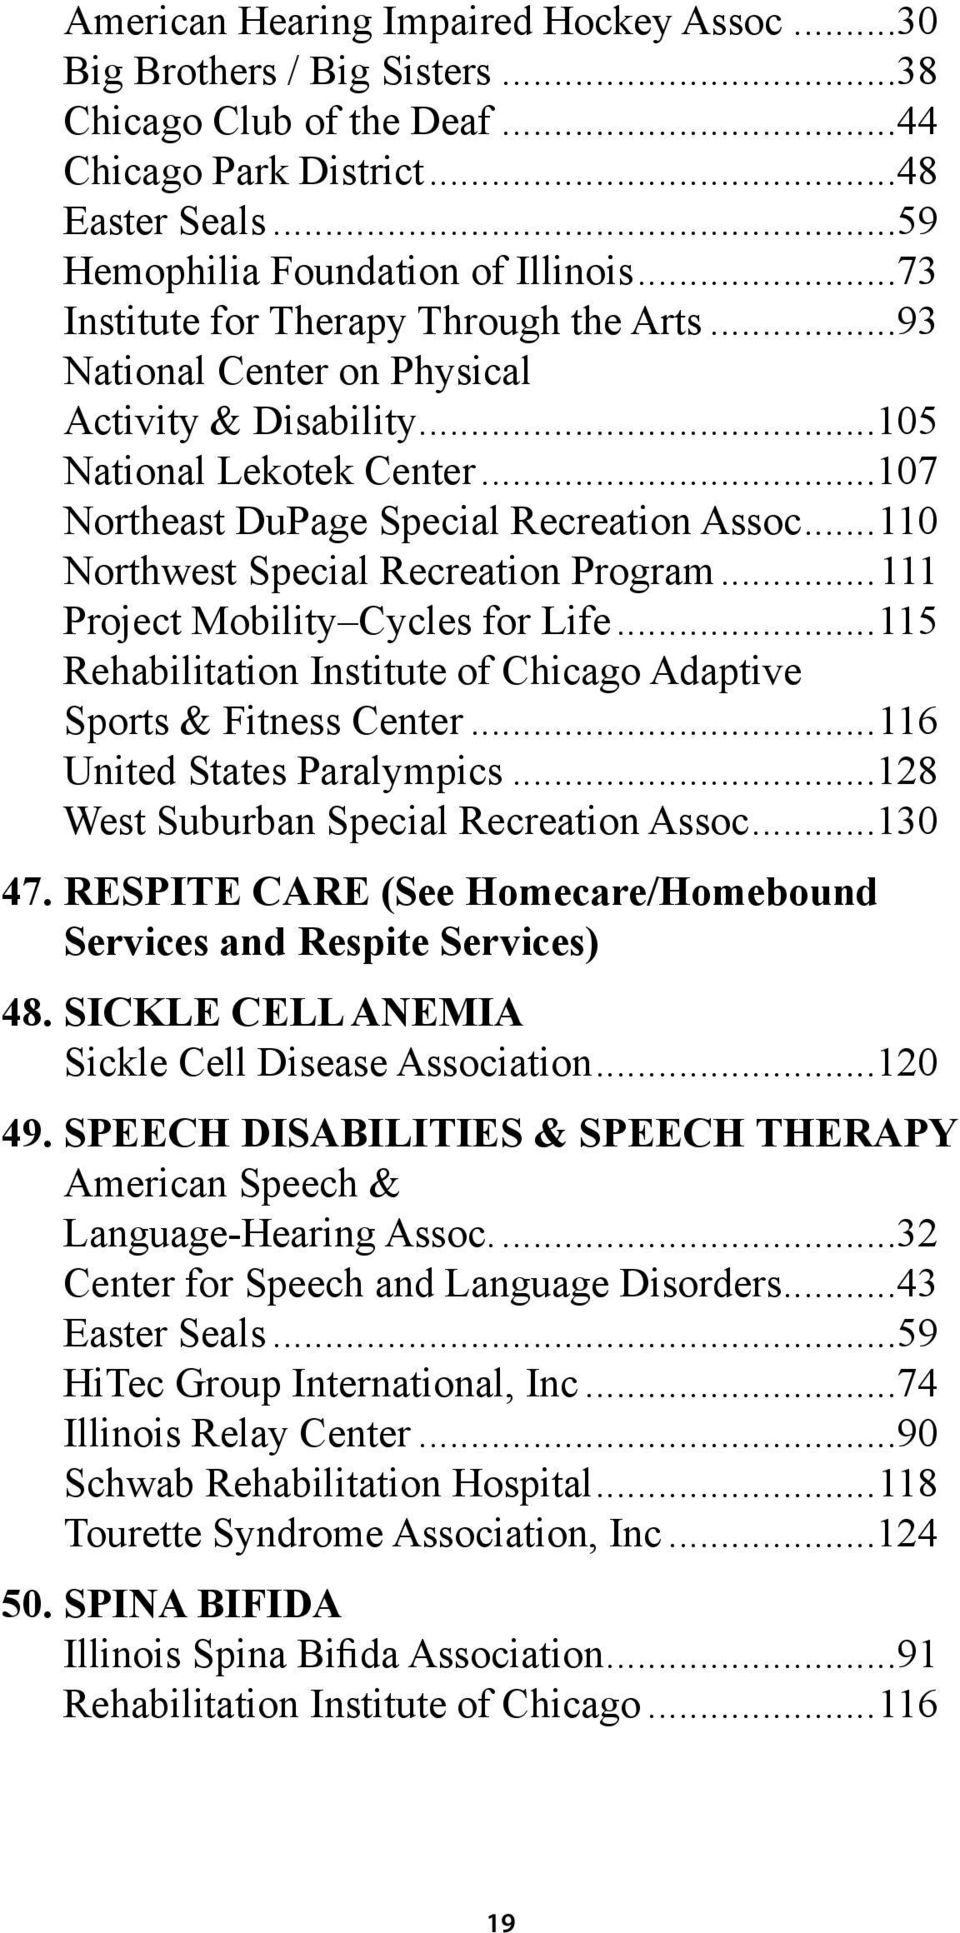 ..110 Northwest Special Recreation Program...111 Project Mobility Cycles for Life...115 Rehabilitation Institute of Chicago Adaptive Sports & Fitness Center...116 United States Paralympics.